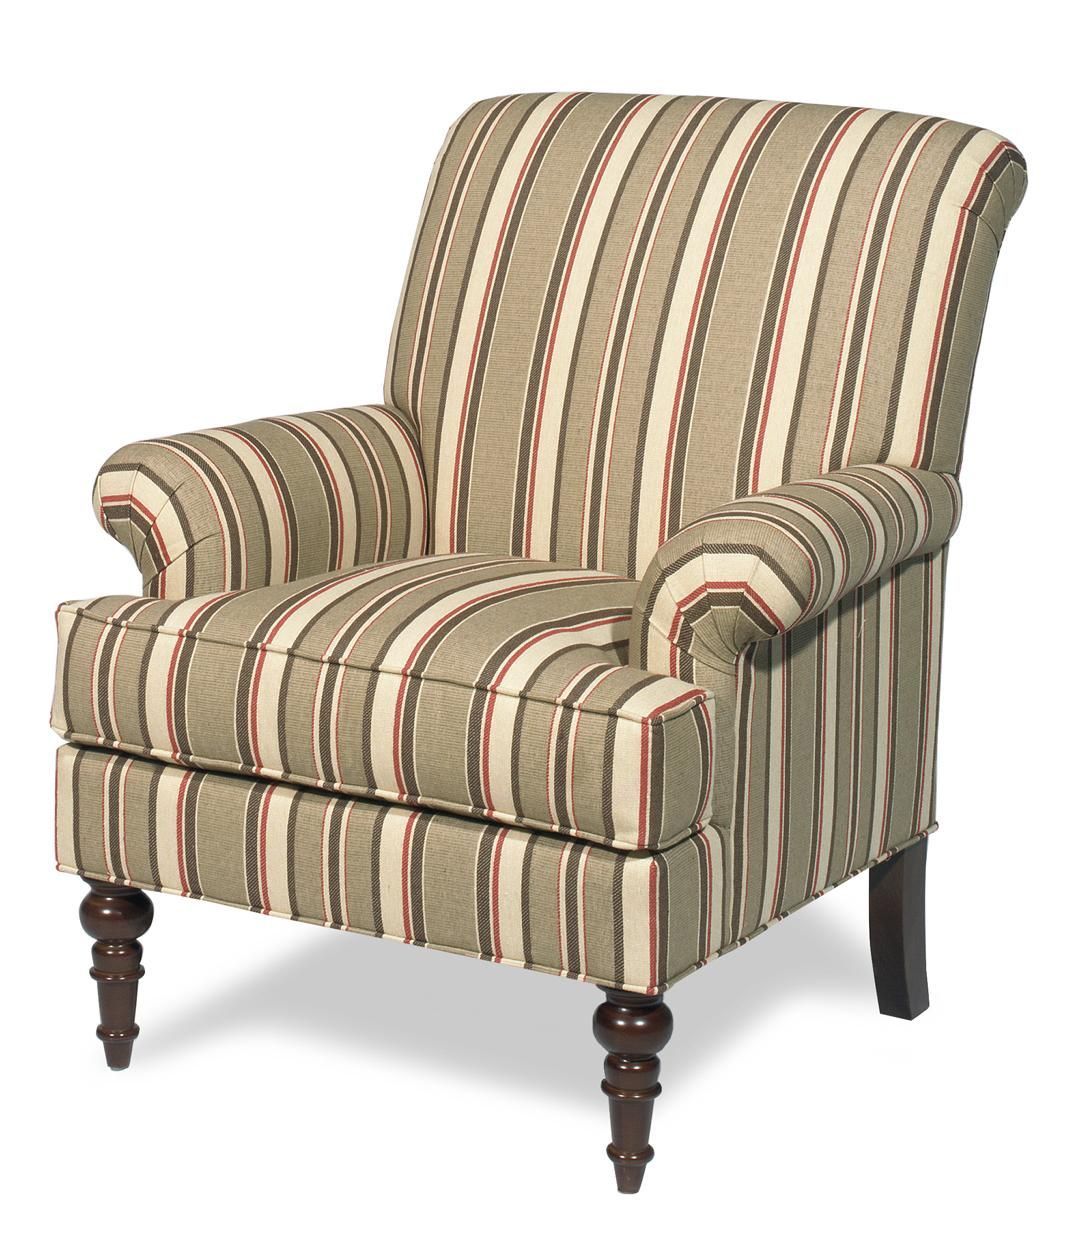 Attirant Paula Deen By Universal Paula Deen Home Traditional Chair With English Arms  And Turned Legs